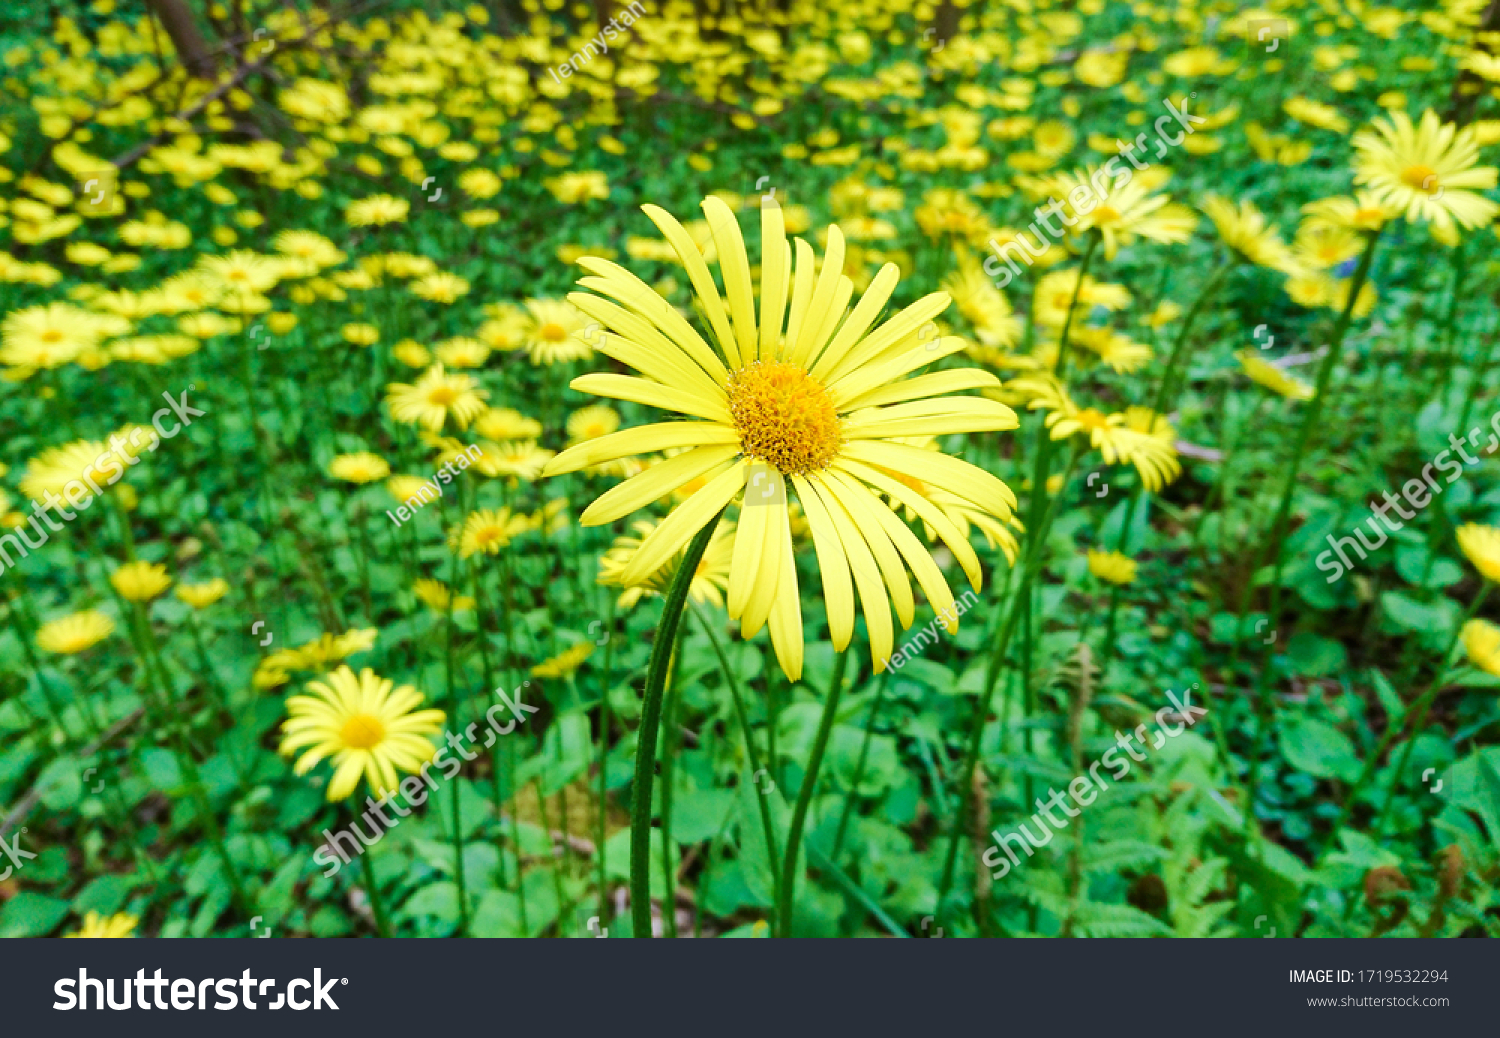 stock-photo-leopard-s-bane-doronicum-pla